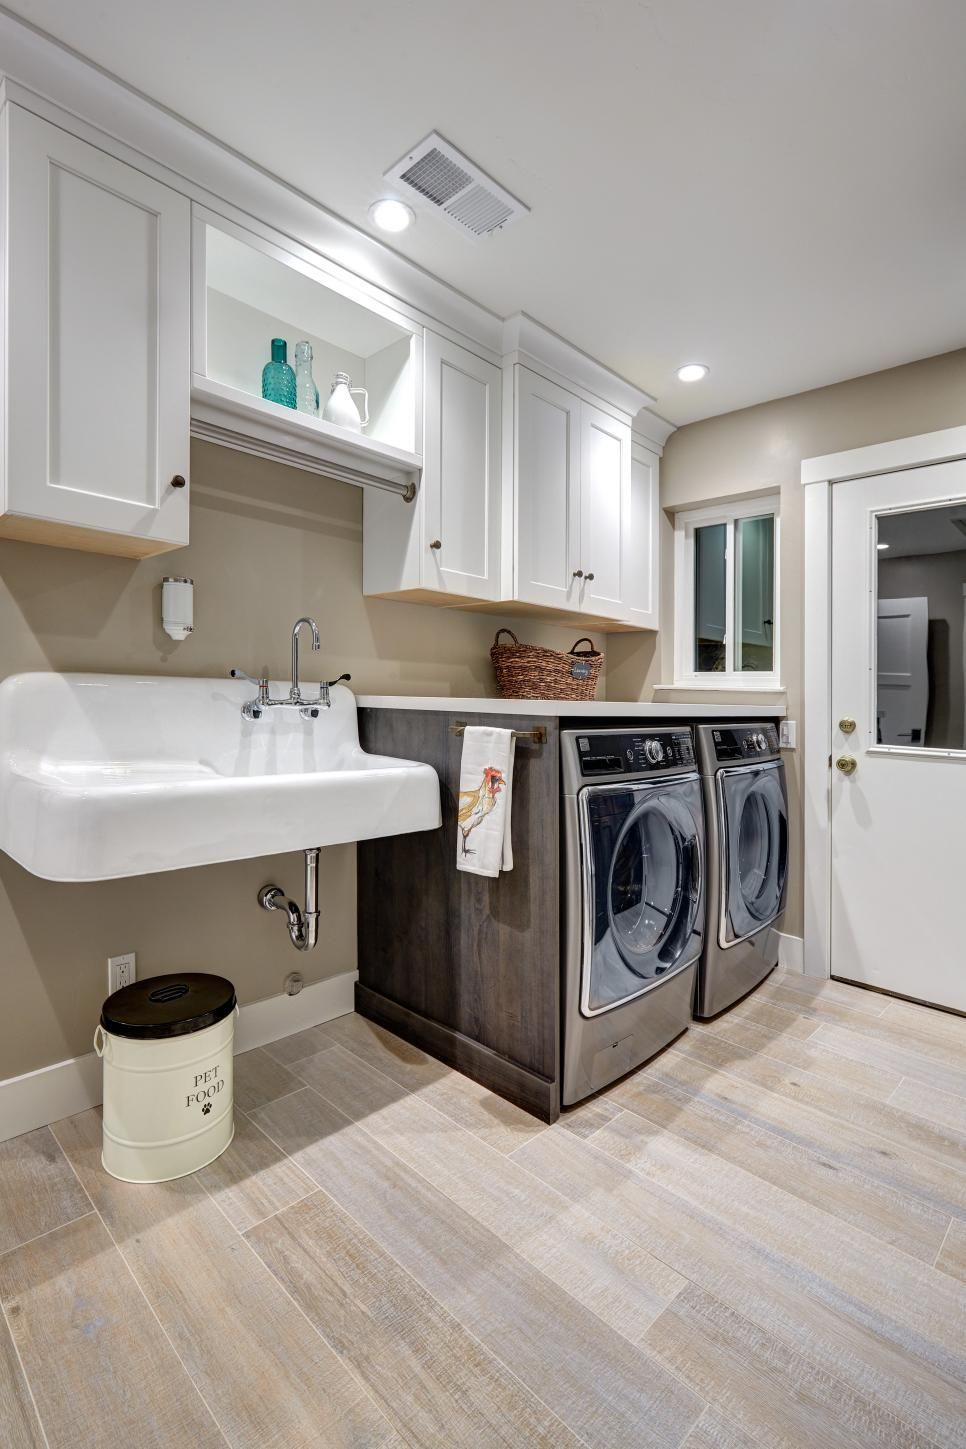 The White Cabinets And Sink In This Laundry Room Give The Space A Clean  Look.